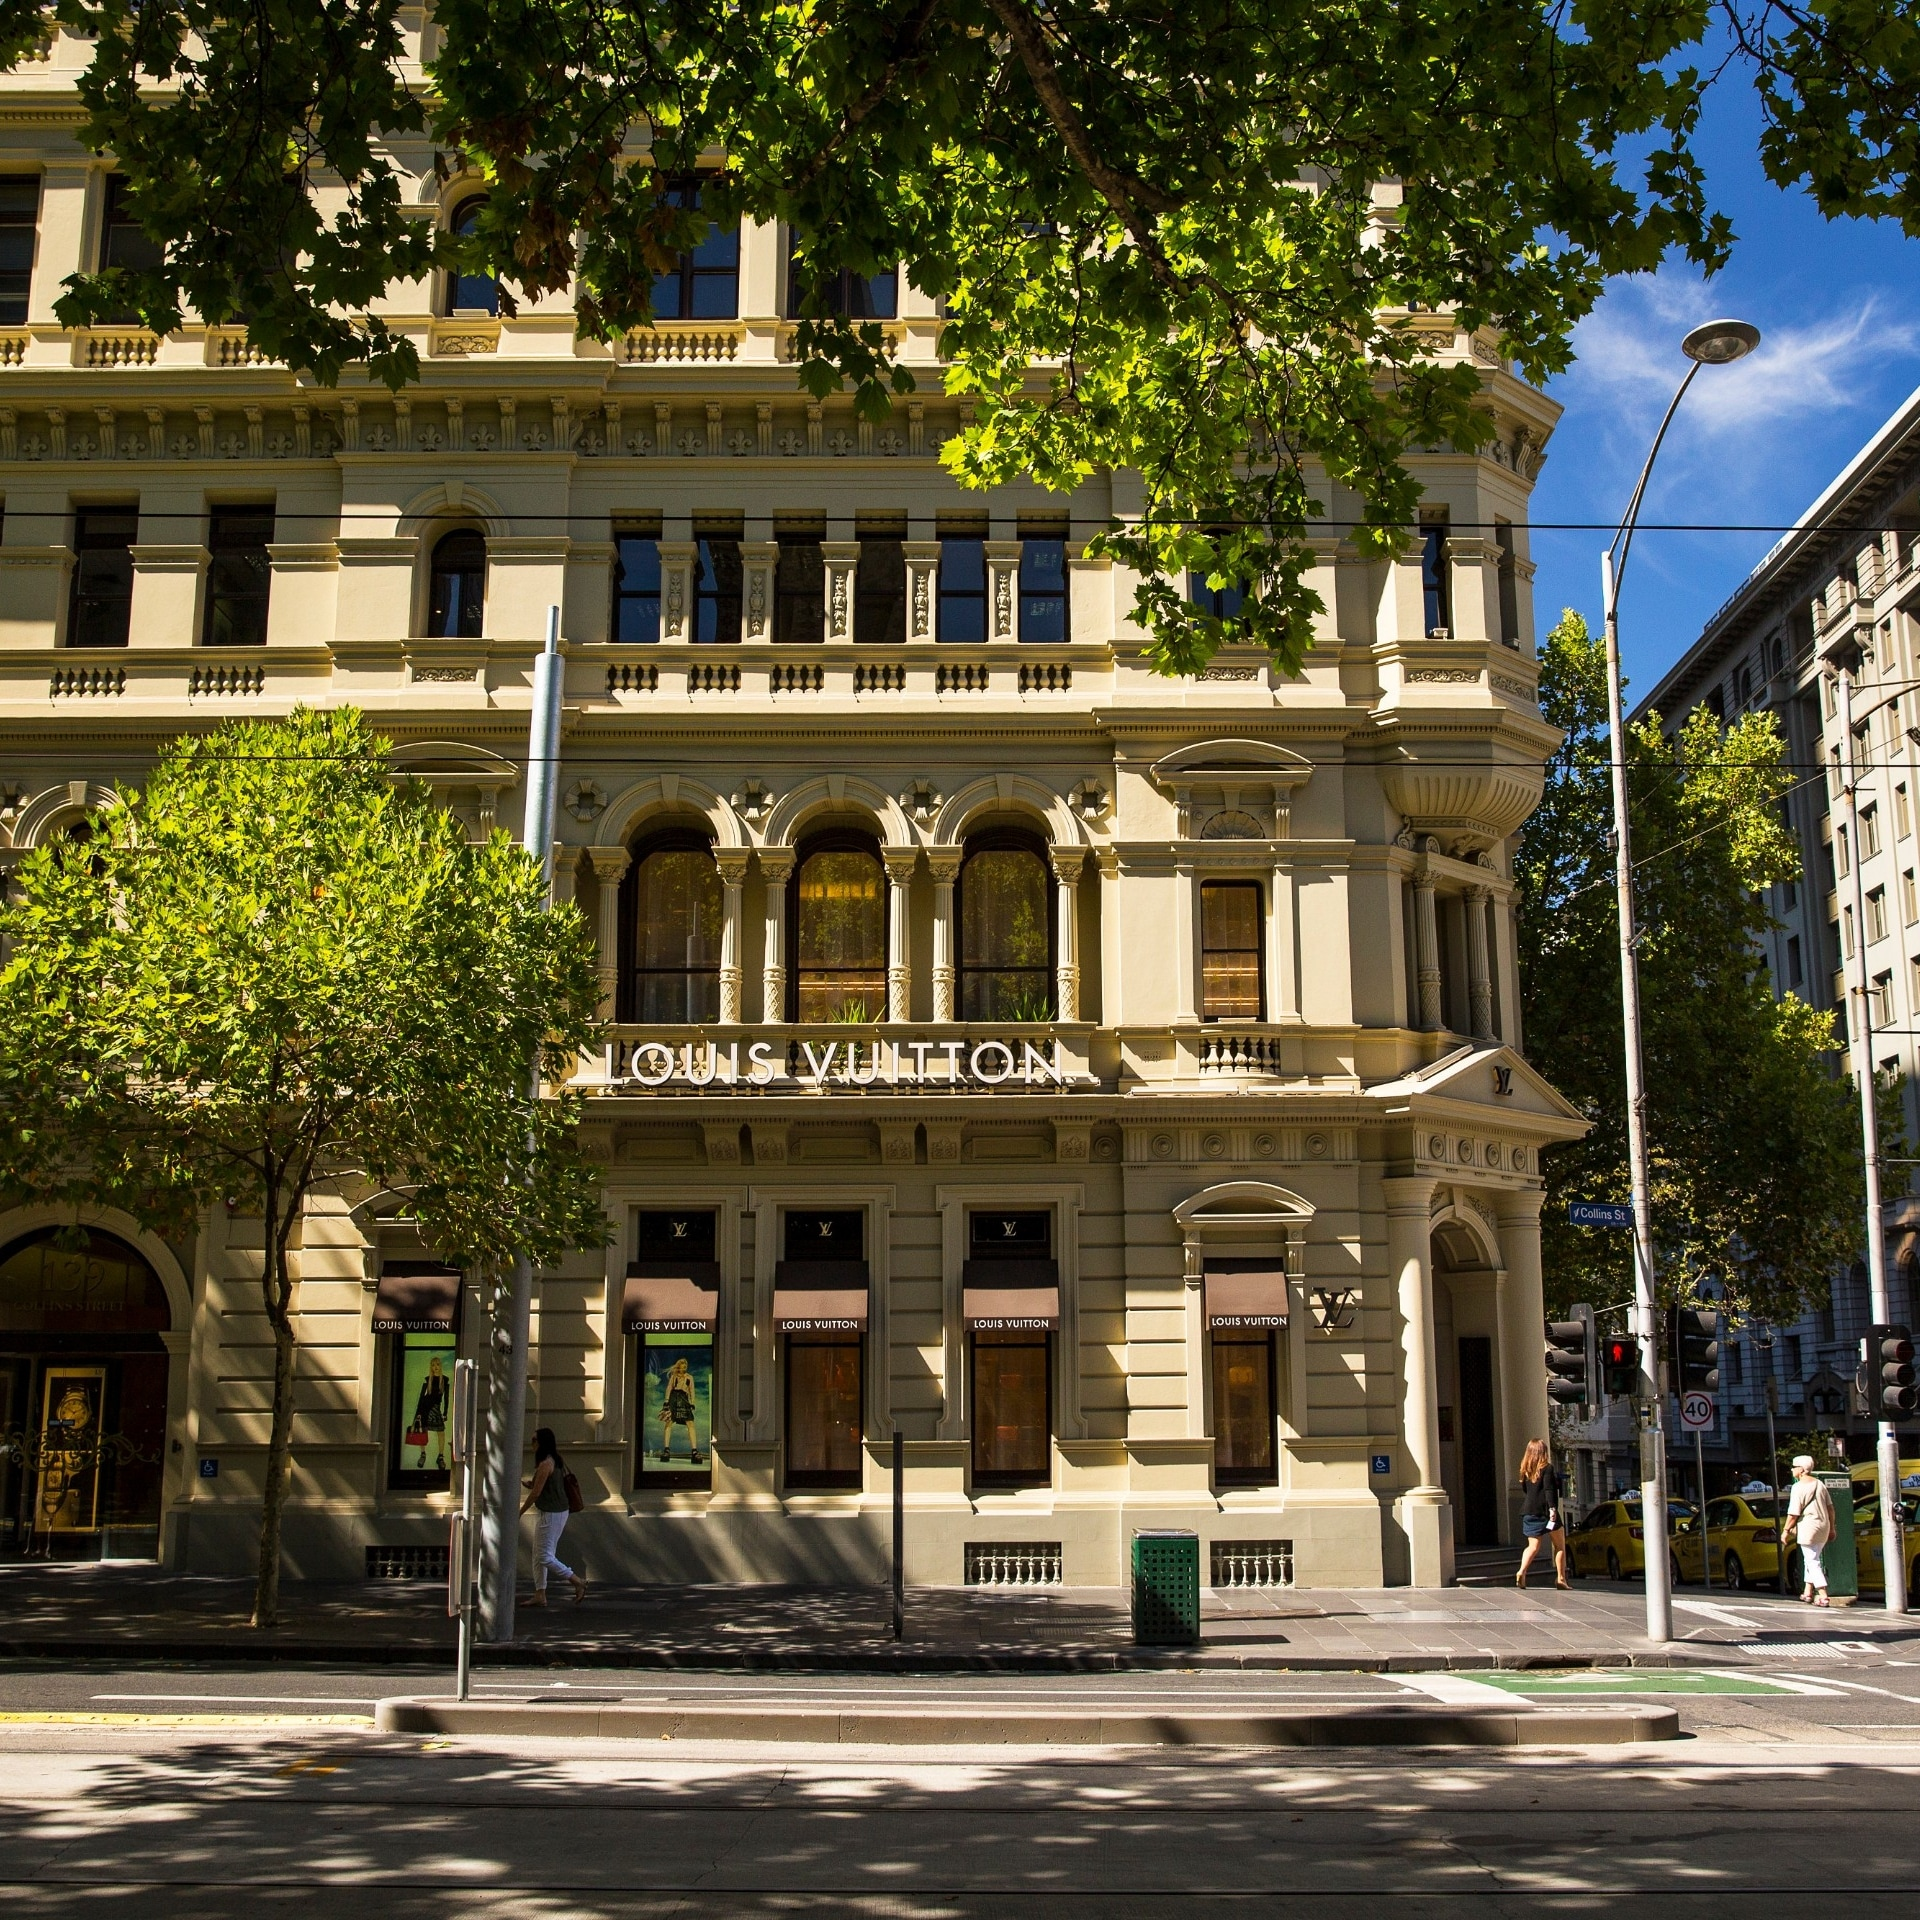 Louis Vuitton boutique on Collins Street in Melbourne © Visit Victoria